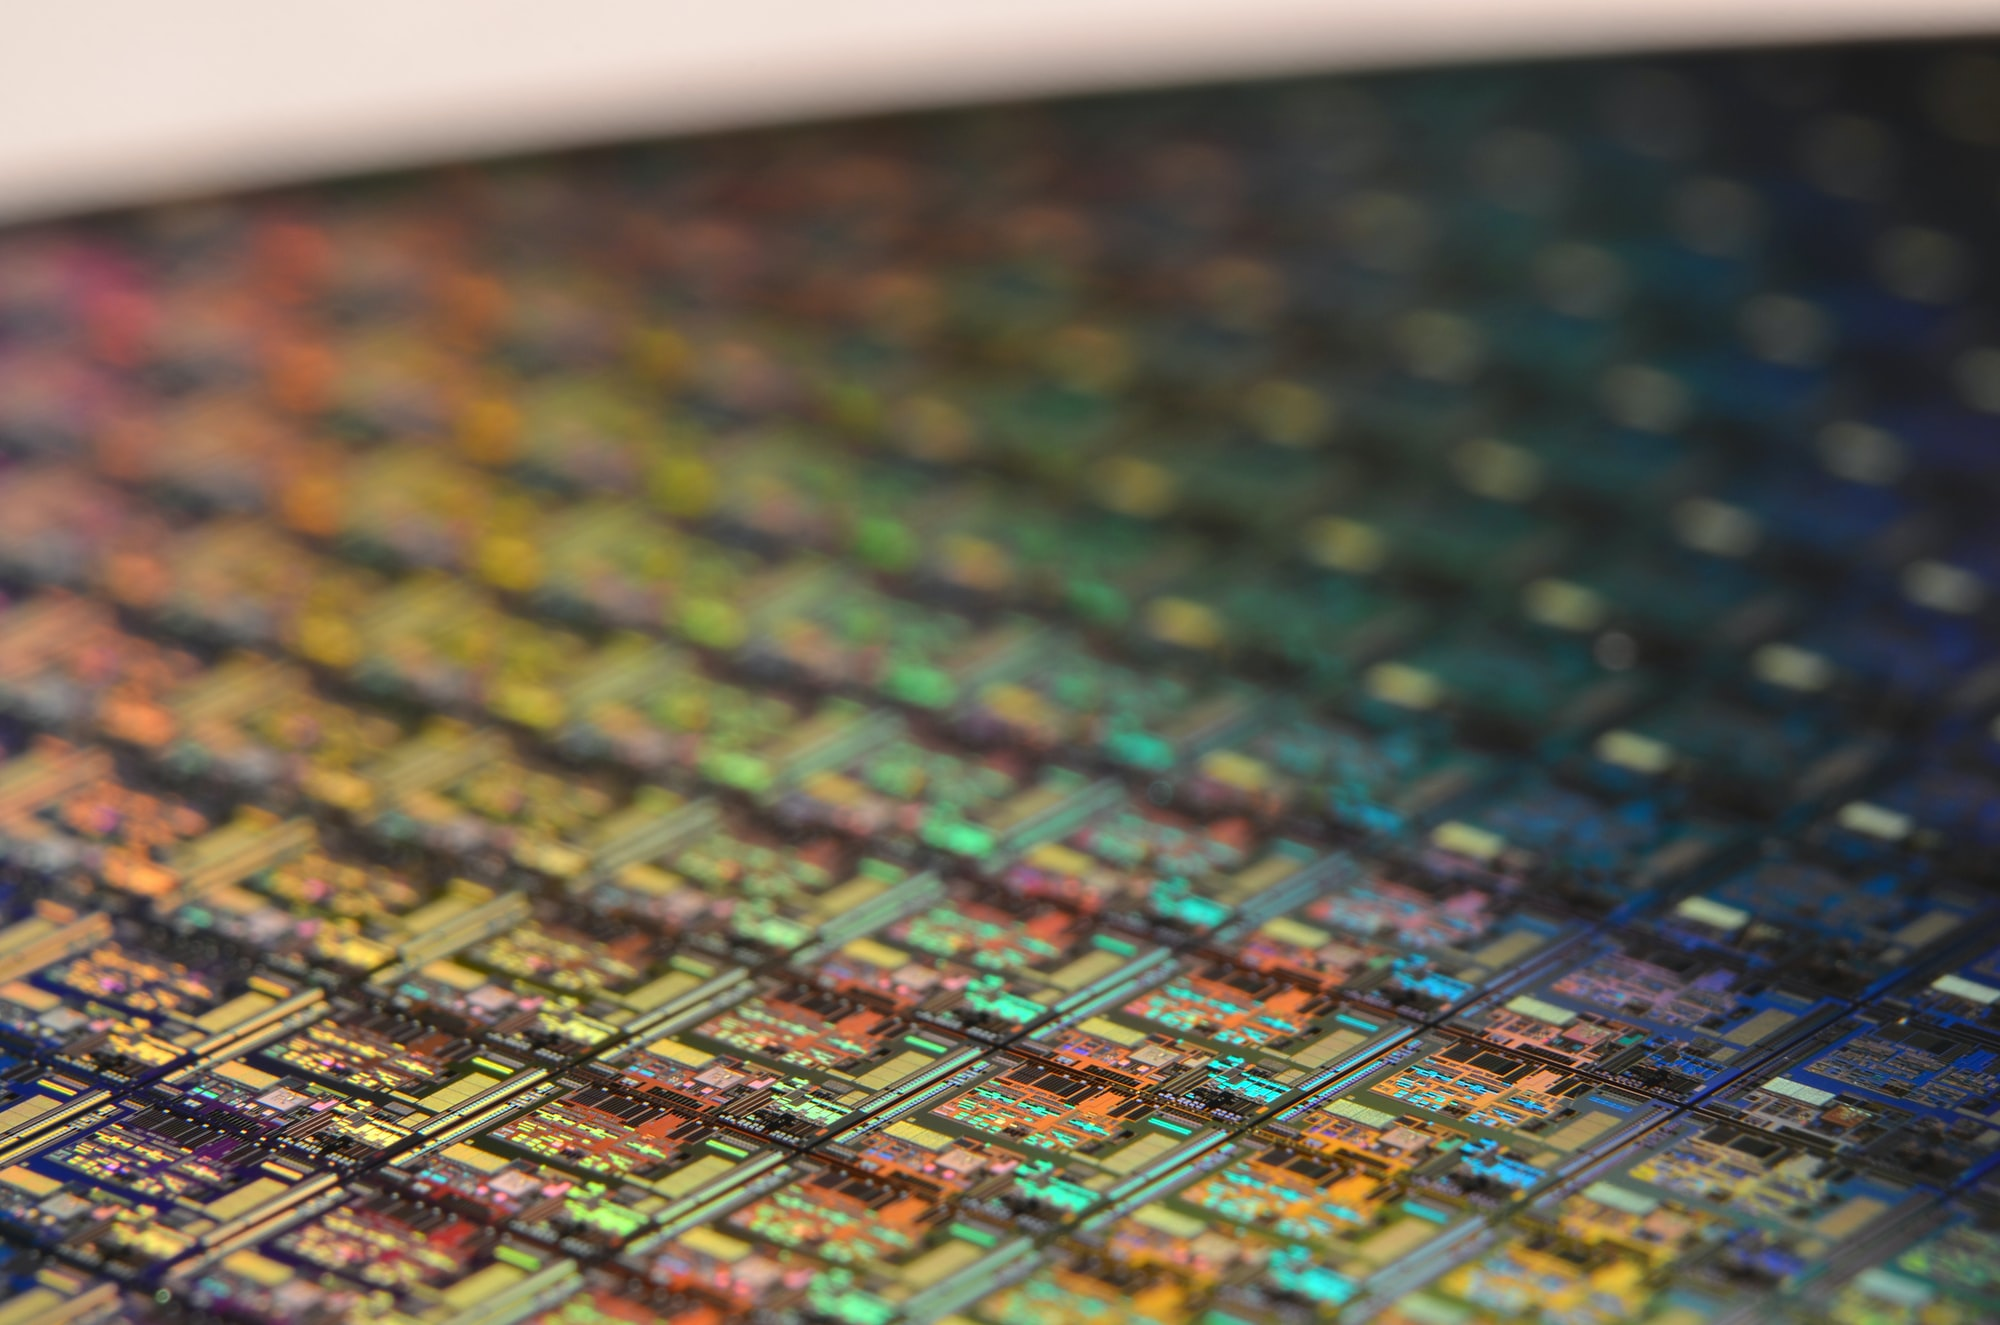 Daily Productive Sharing 285 - What Makes TSMC Successful?